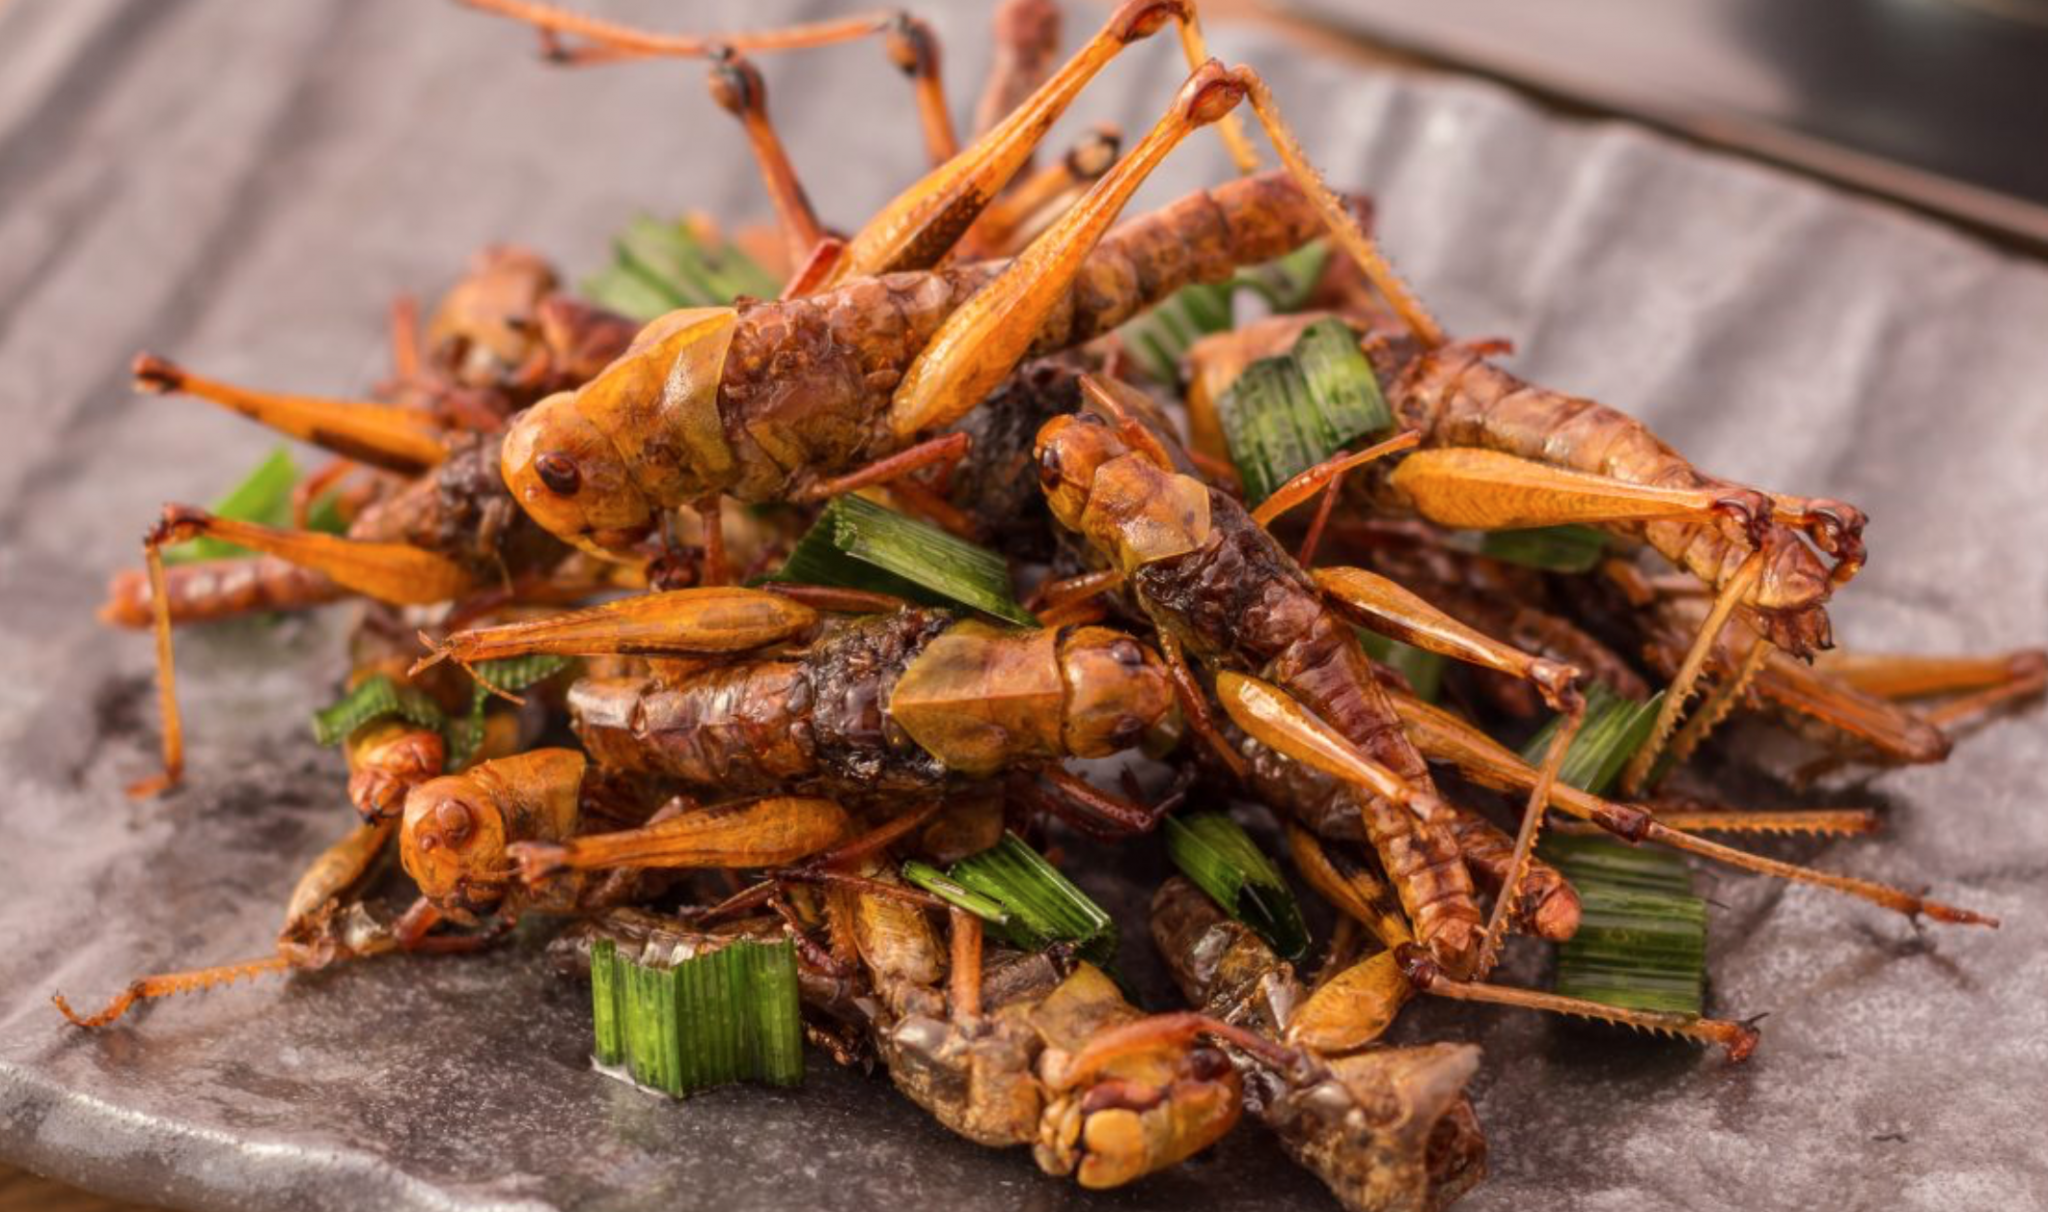 Picture of edible insects with seasoning